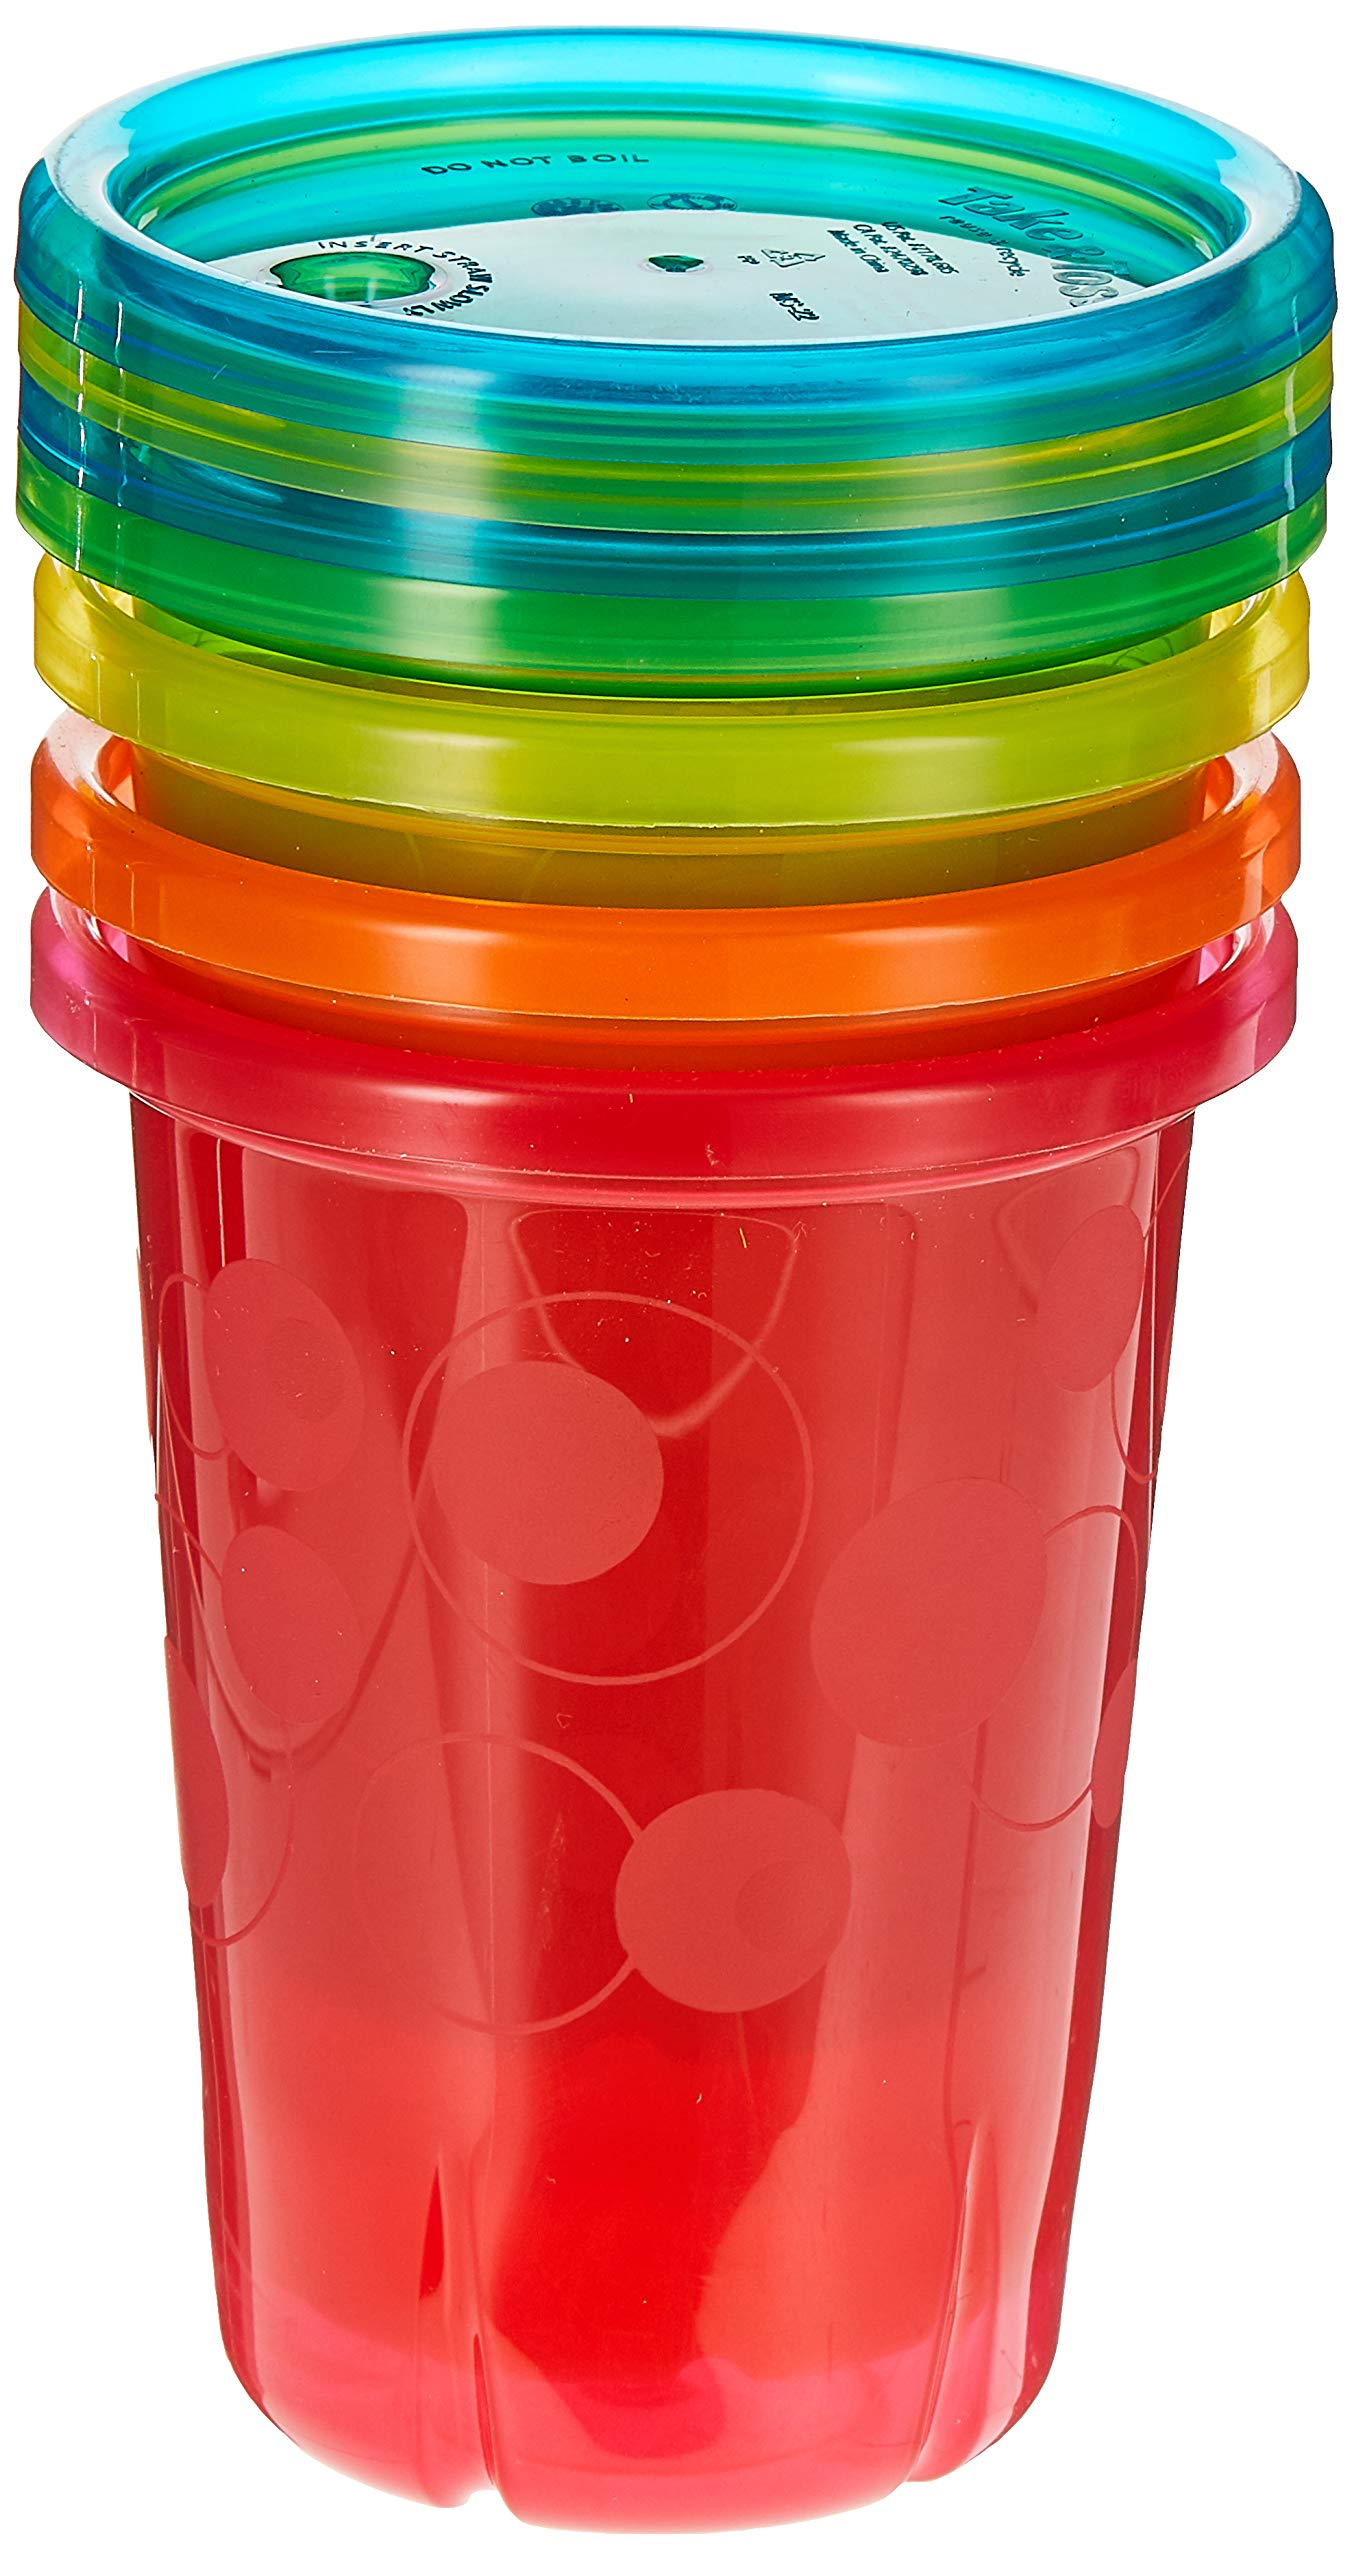 The First Years Take /& Toss Spill-Proof Soft Spout Cups 10 Ounce 2pk